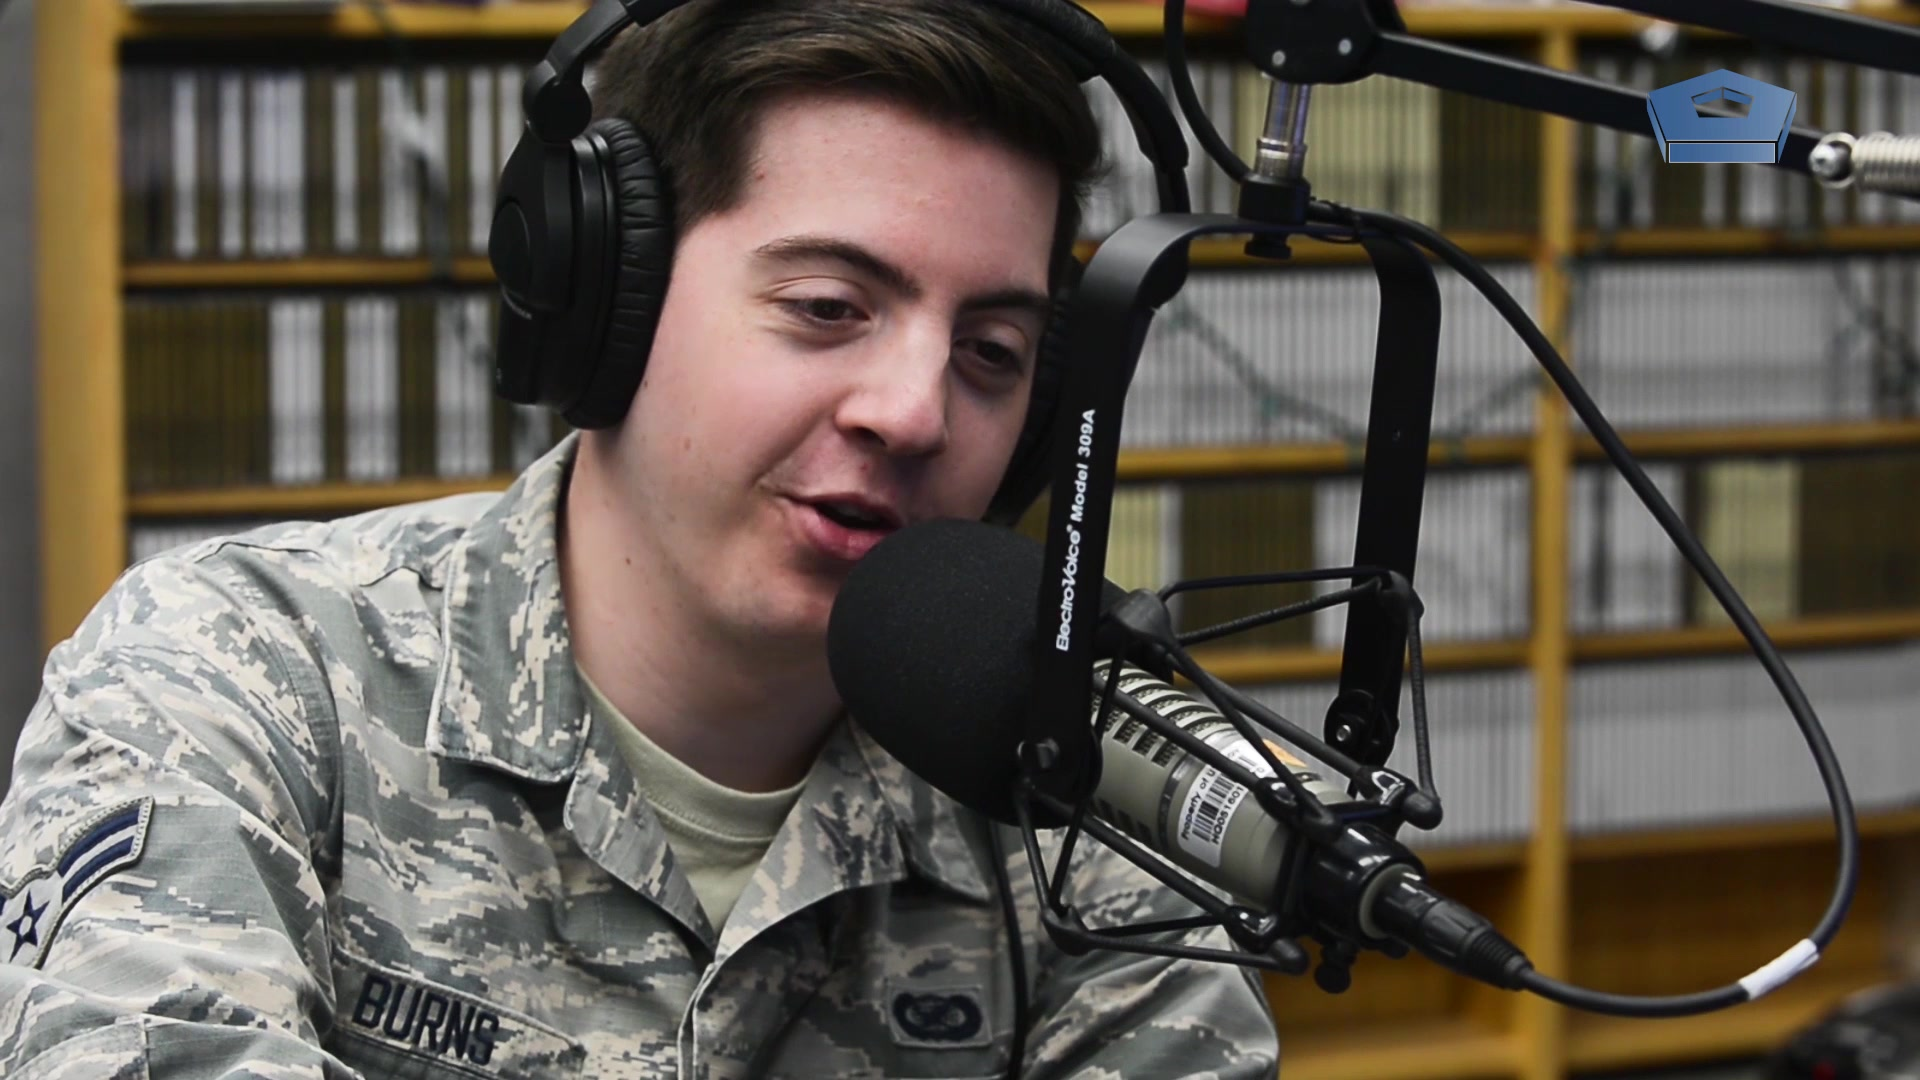 A service member speaks into a microphone from behind a radio station control board.